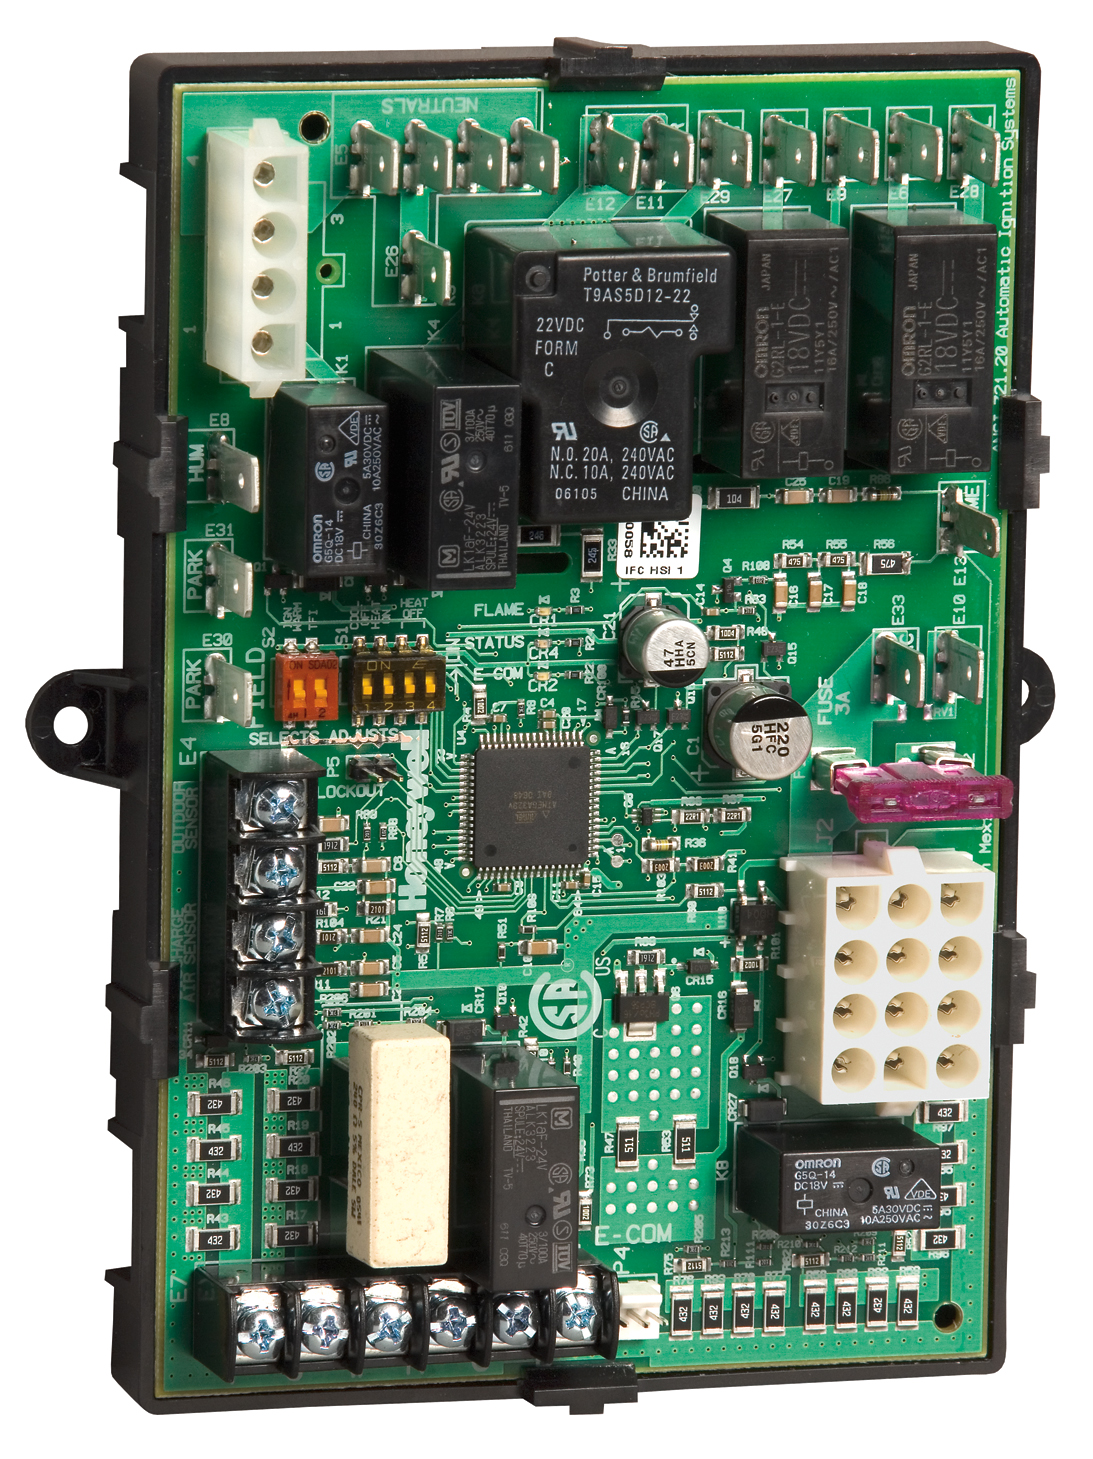 small resolution of board comes installed inside of a plastic tray for easy installation and protection against